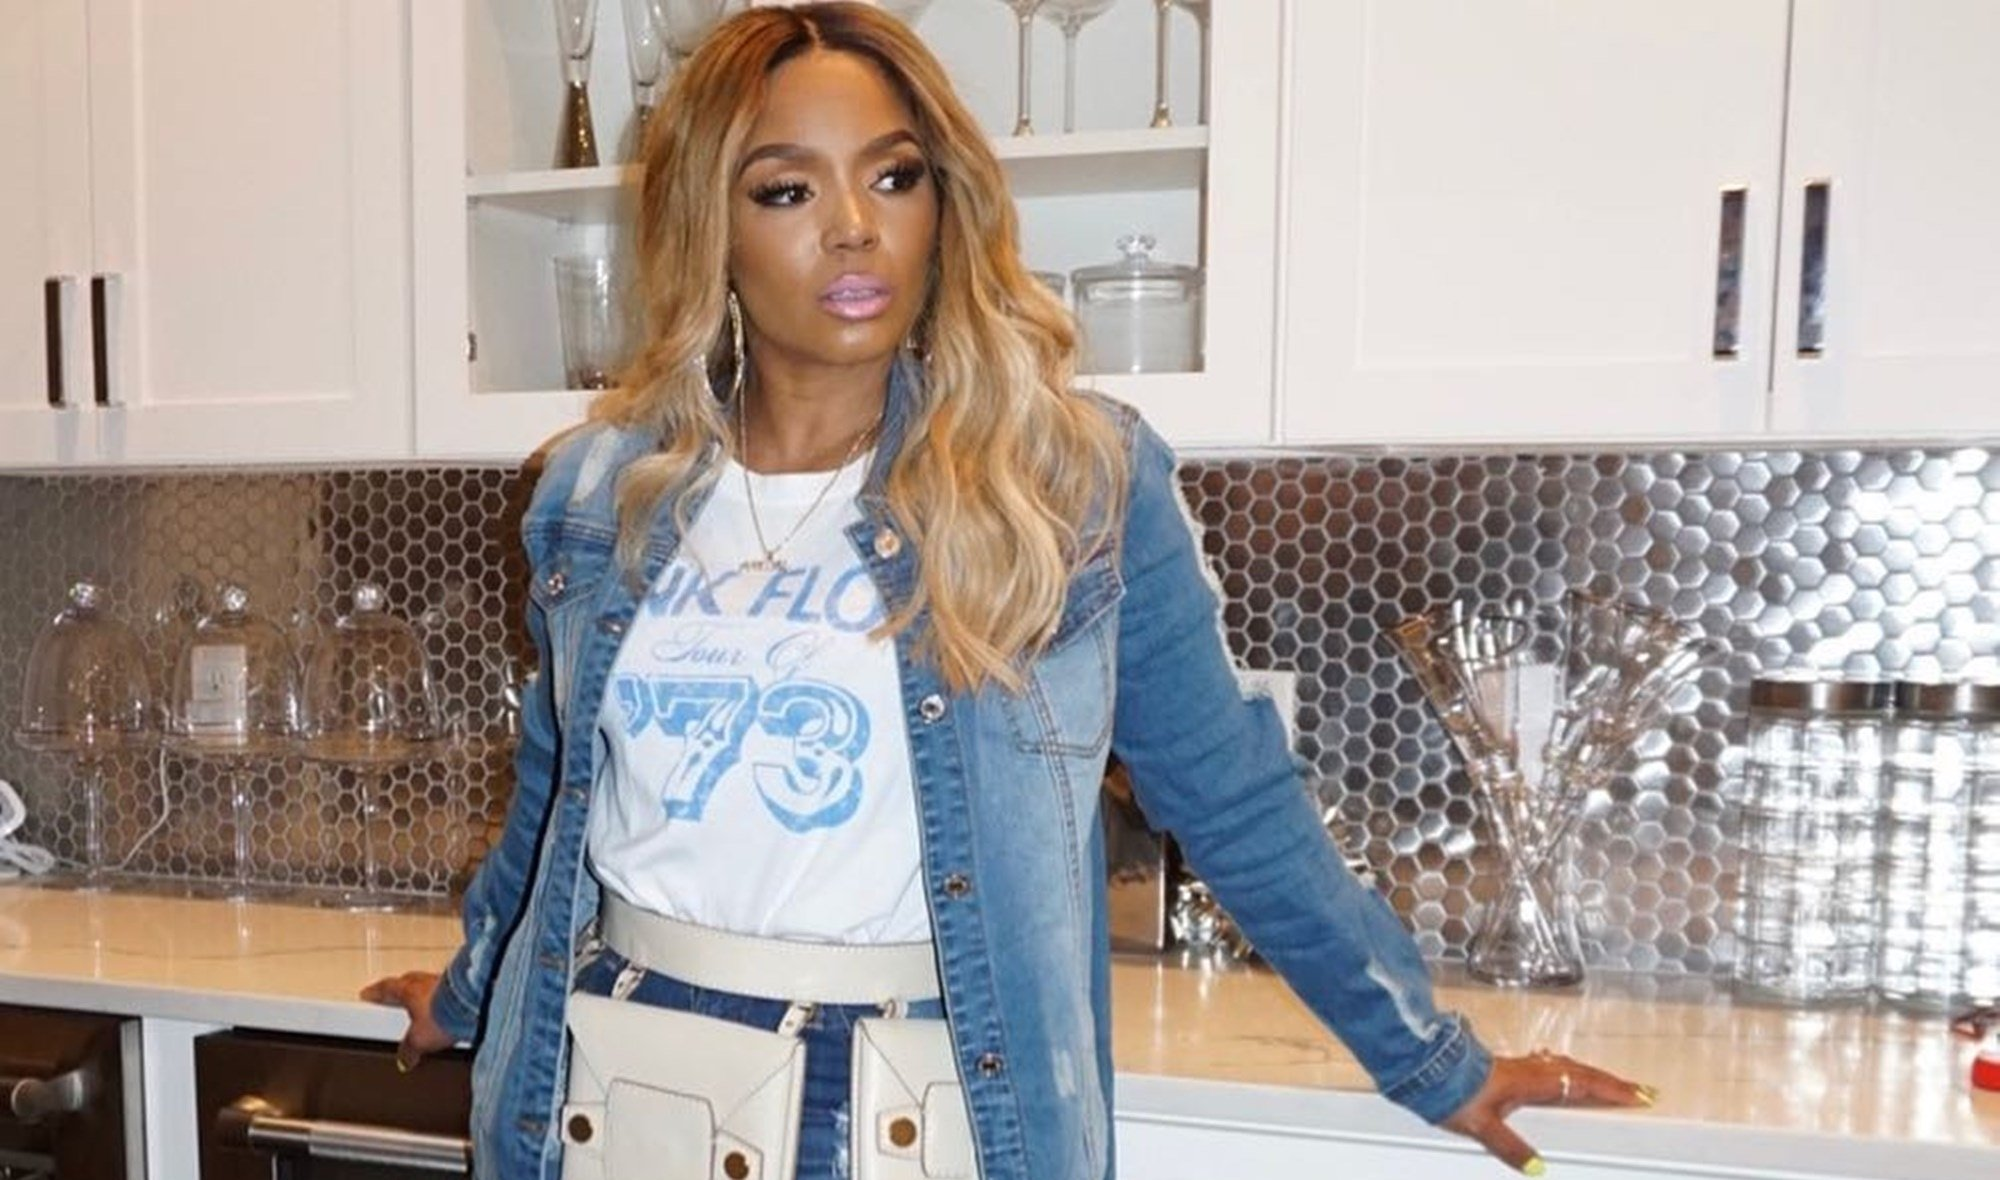 Rasheeda Frost Is Flaunting A New Look At The Pressed Boutique – Check It Out Here